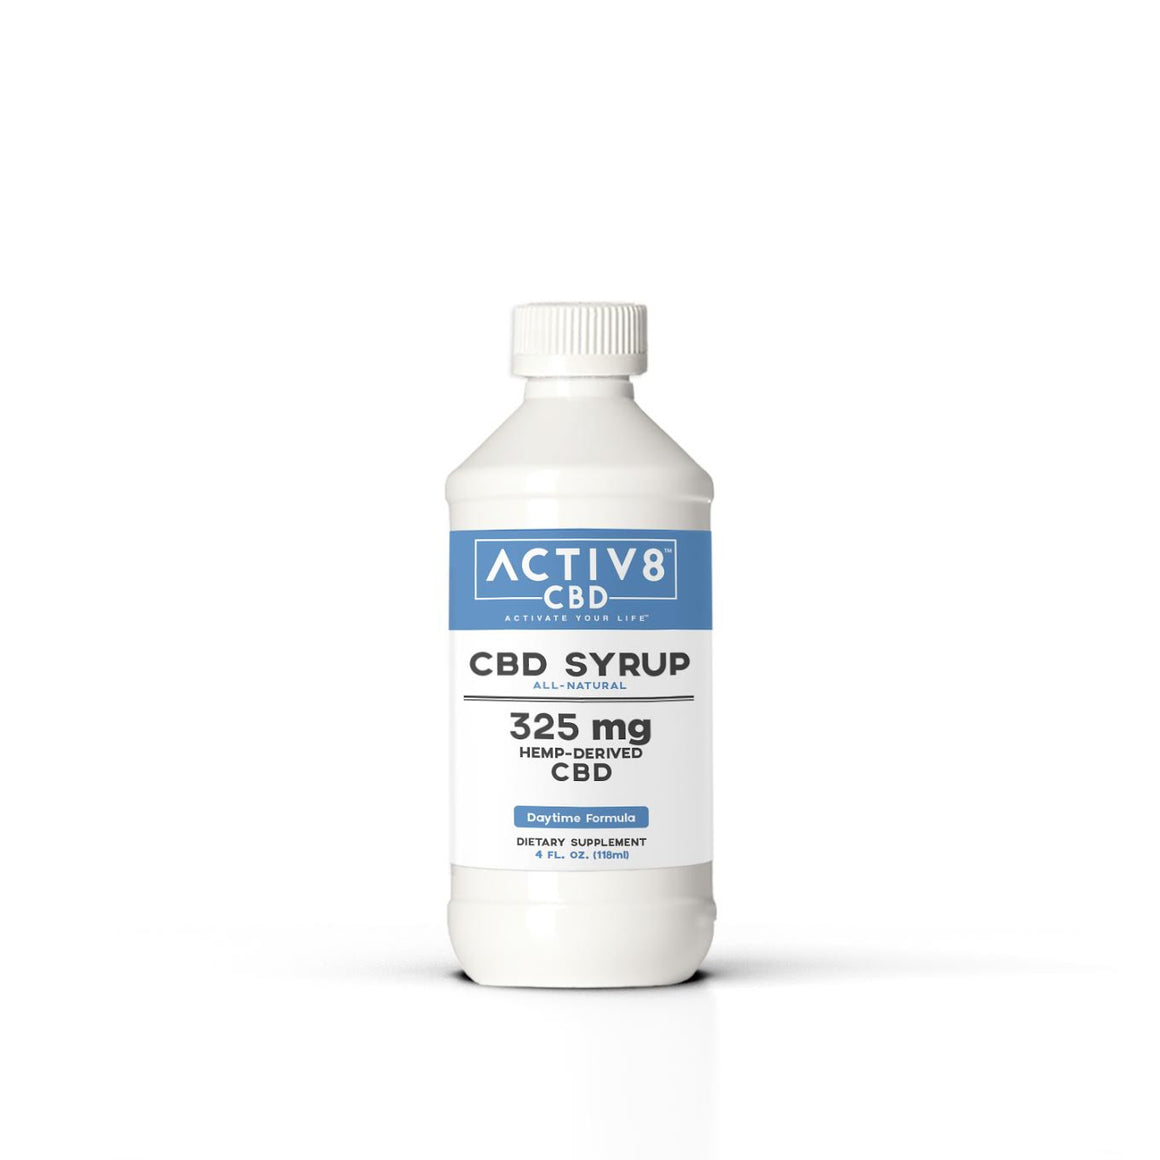 ACTIV8 SYRUP (Daytime Formula) All-Natural - (325mg CBD Per Bottle - 8+ Servings) - Helps Relieve Mild Pain, Stress, Anxiety and More